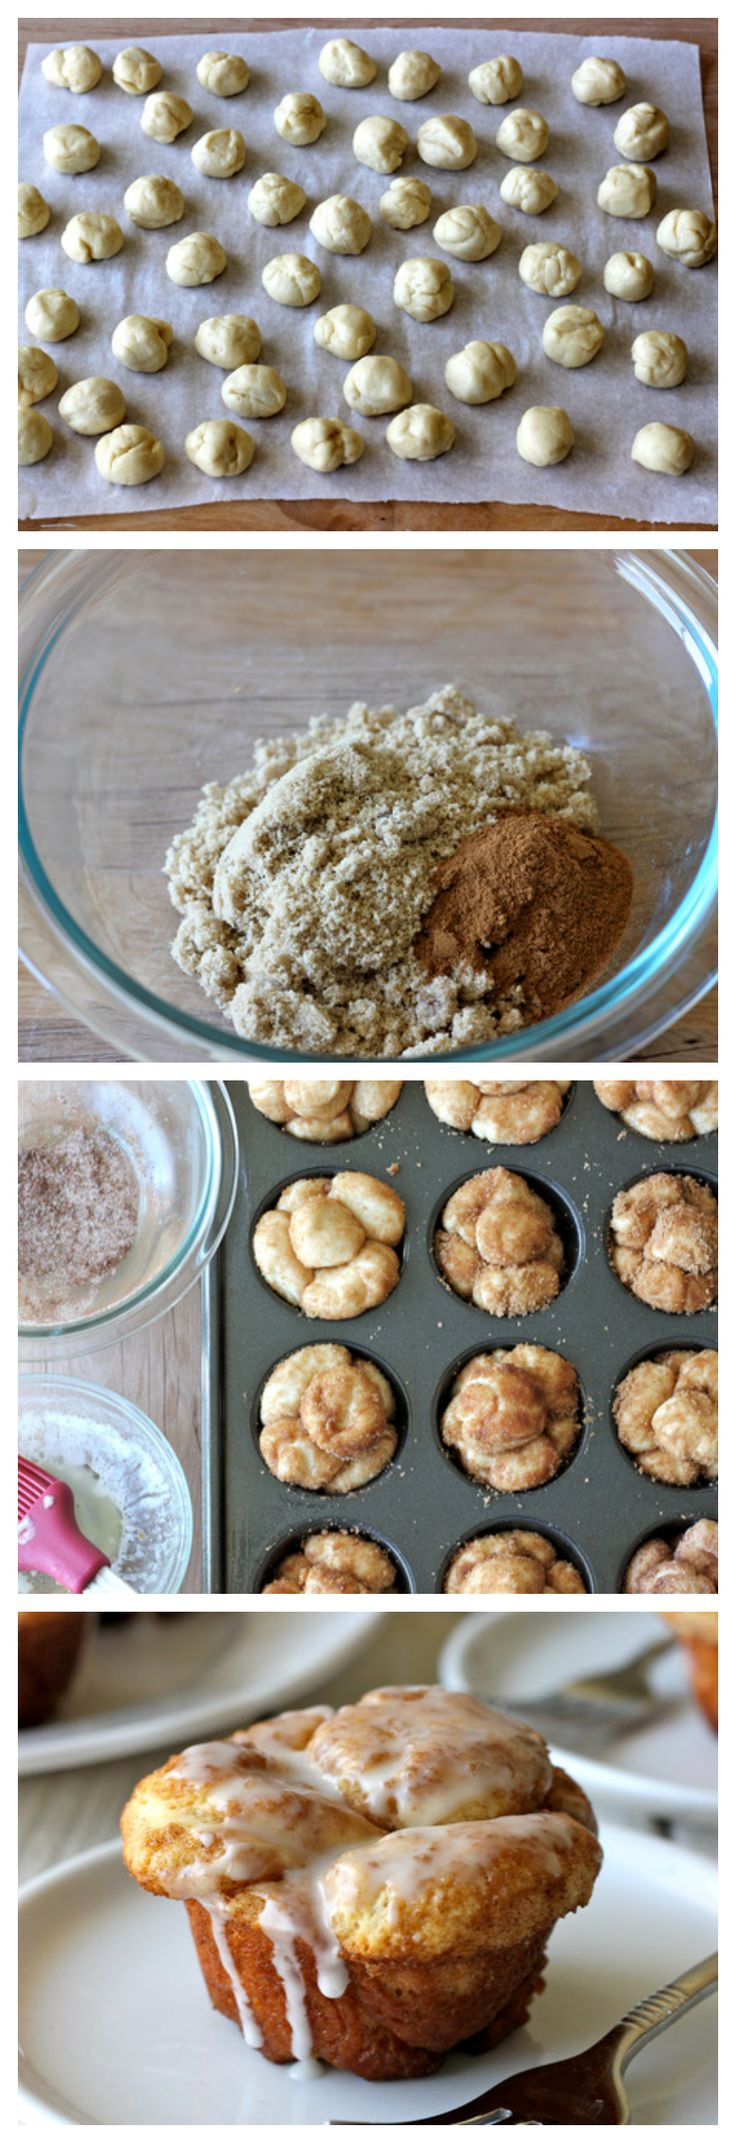 Monkey Bread Cupcakes - Classic monkey bread in irresistible cupcake form oozing with cinnamon sugar goodness and a dripping vanilla glaze!